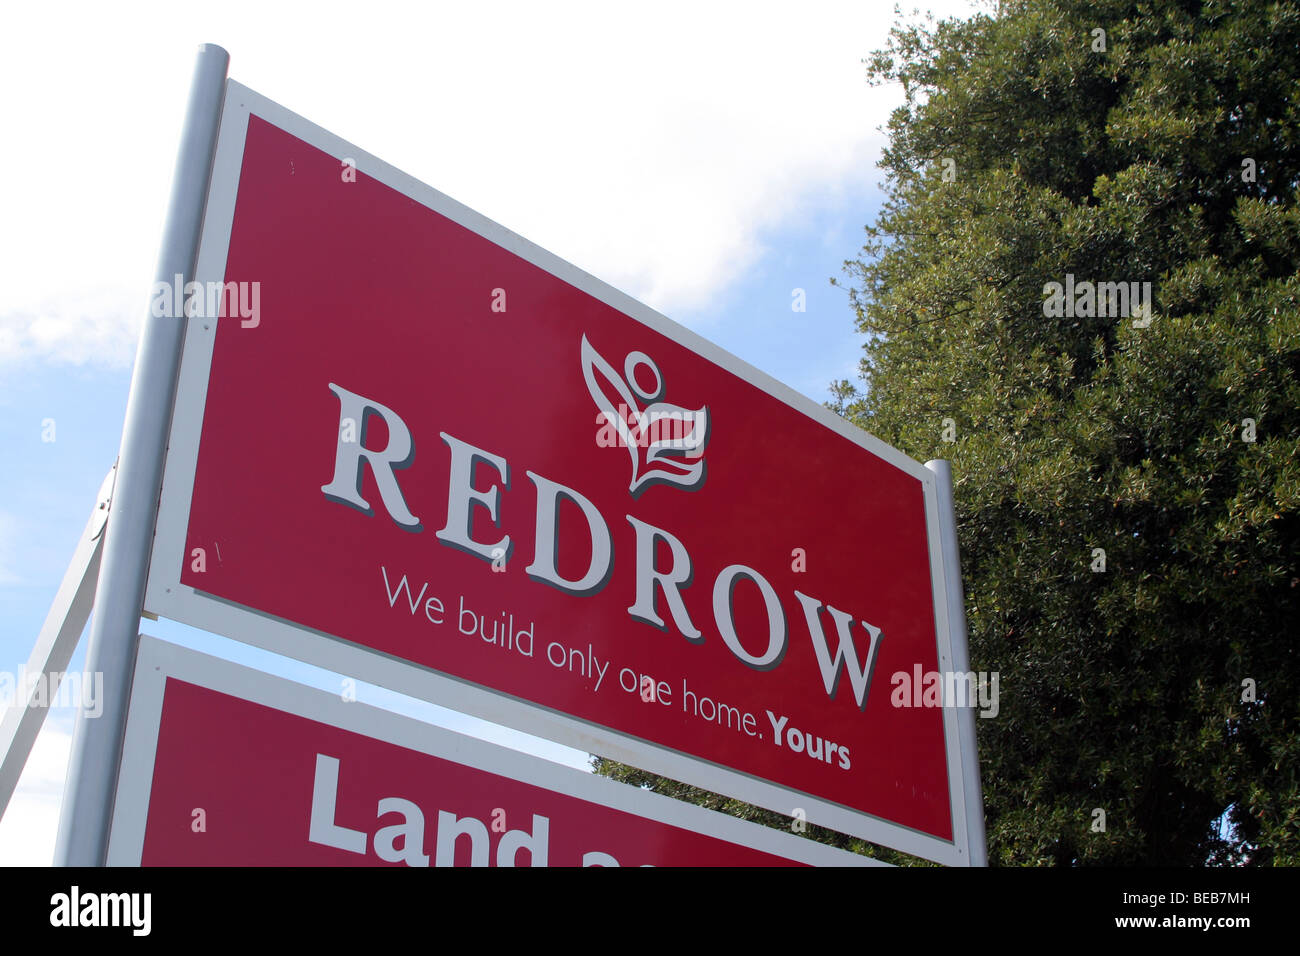 Redrow sign. Redrow is a property development company, based in England, UK - Stock Image